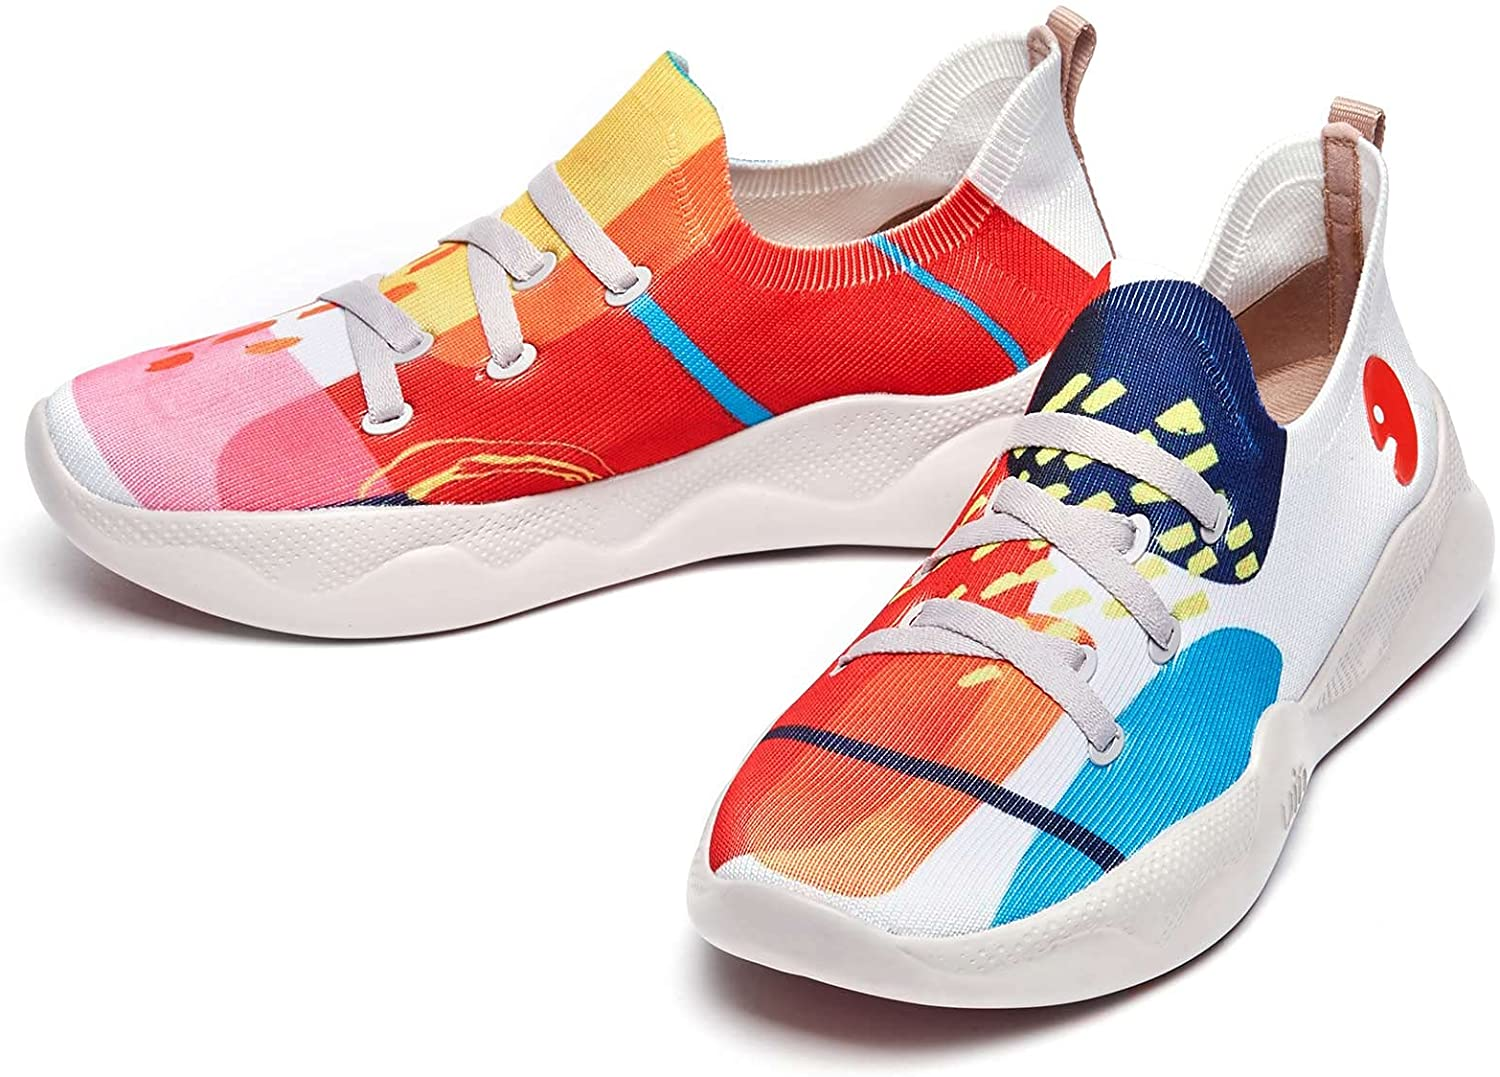 Max 73% OFF UIN Women's Fashion Don't miss the campaign Sneakers Lightweight Casual Ons Walking Slip